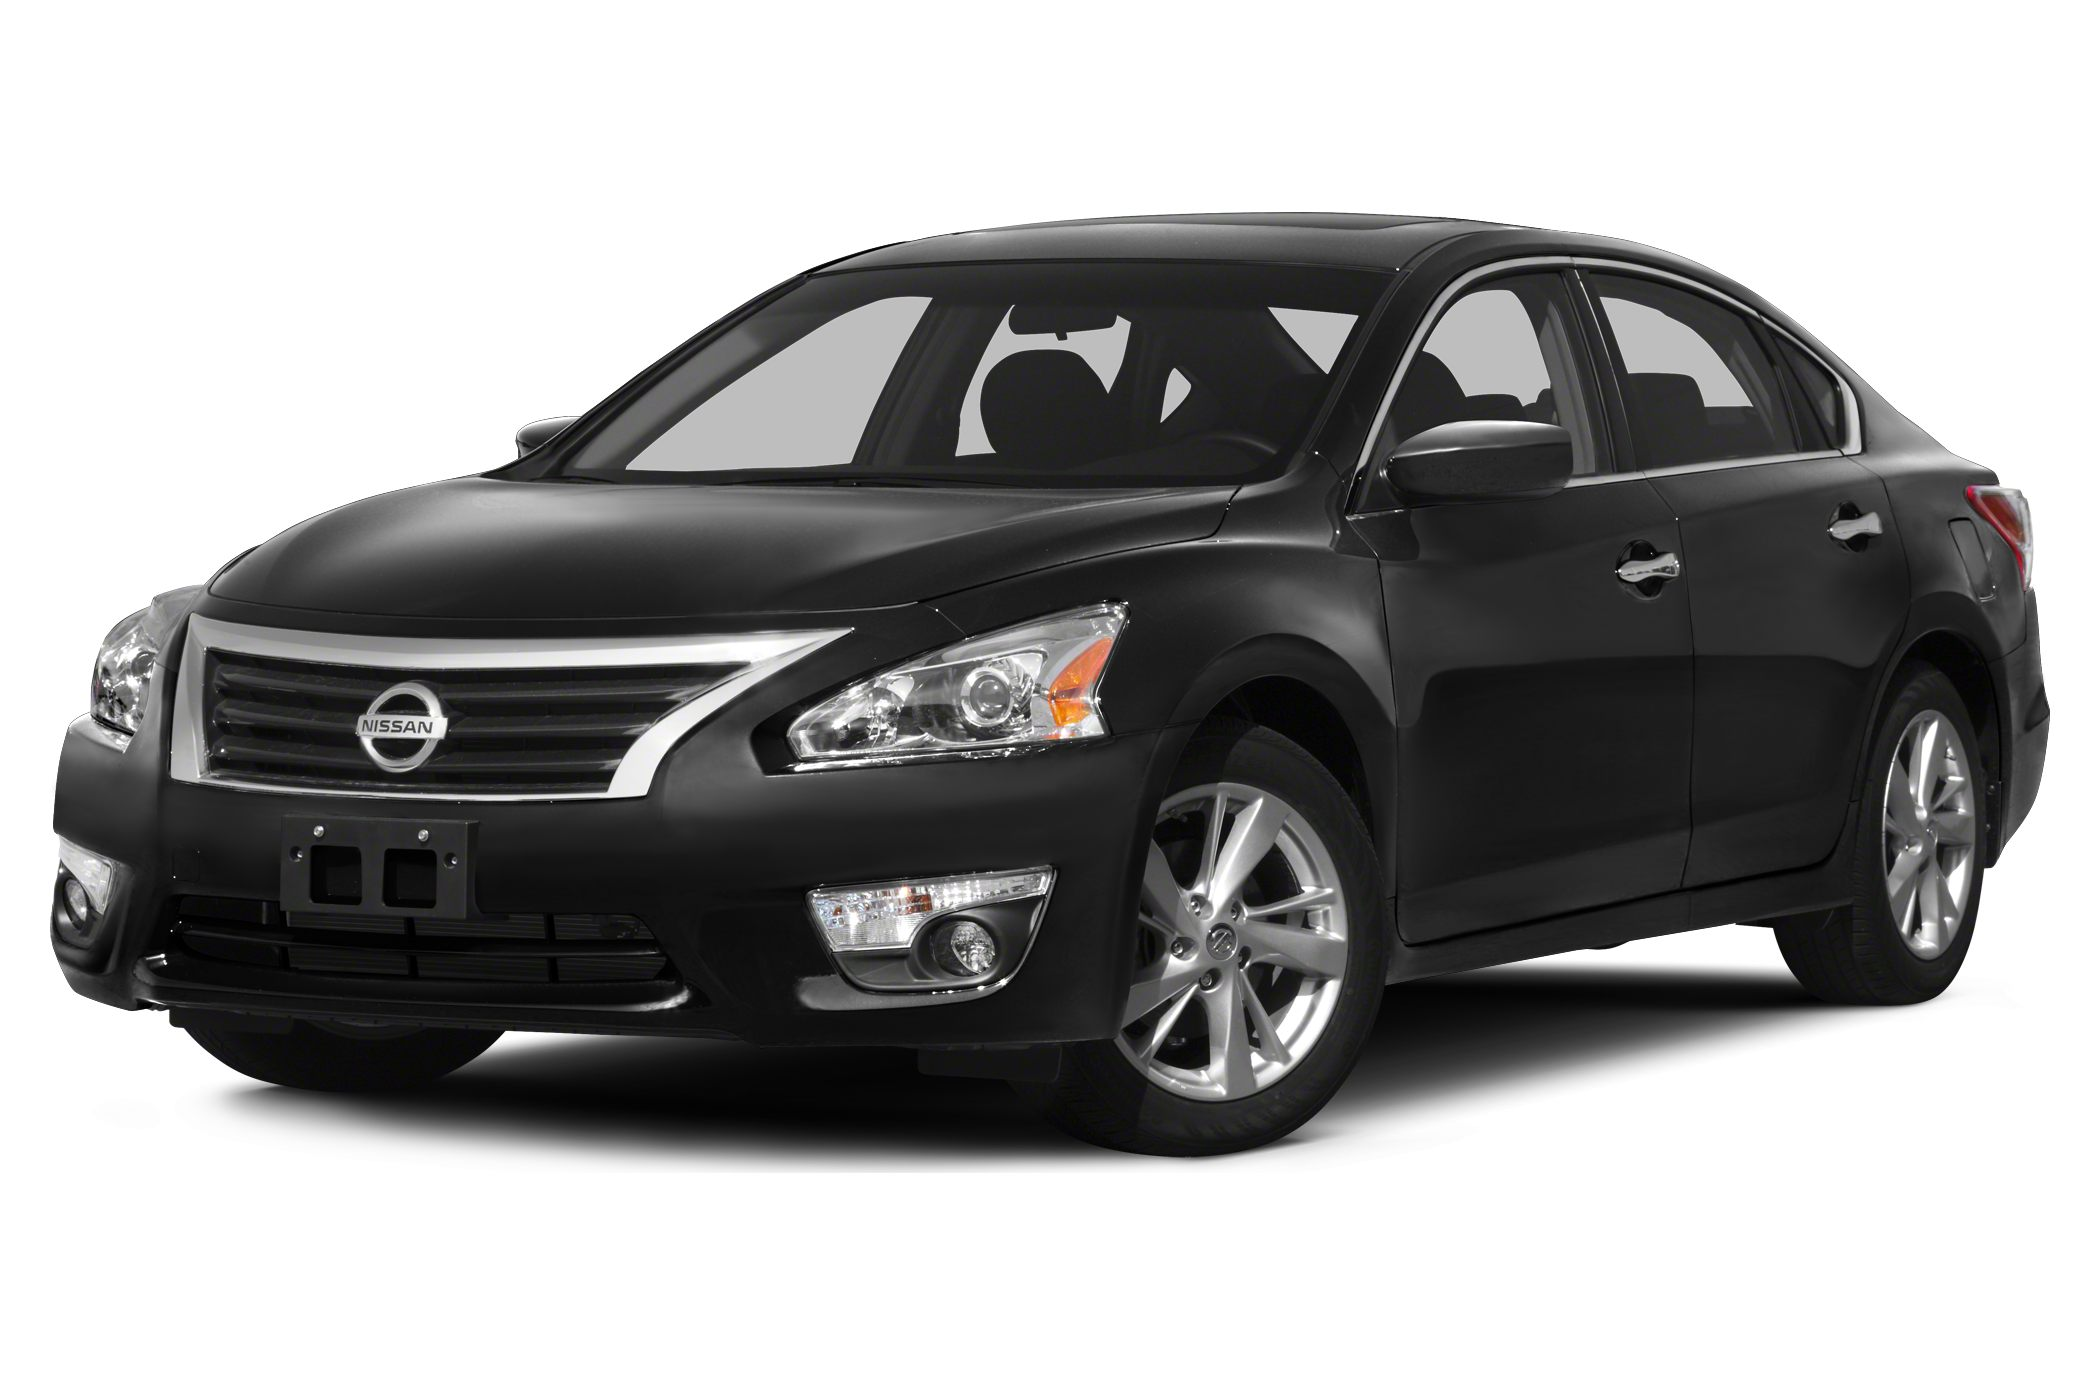 2015 Nissan Altima 2.5 SV Sedan for sale in Grants Pass for $28,575 with 0 miles.